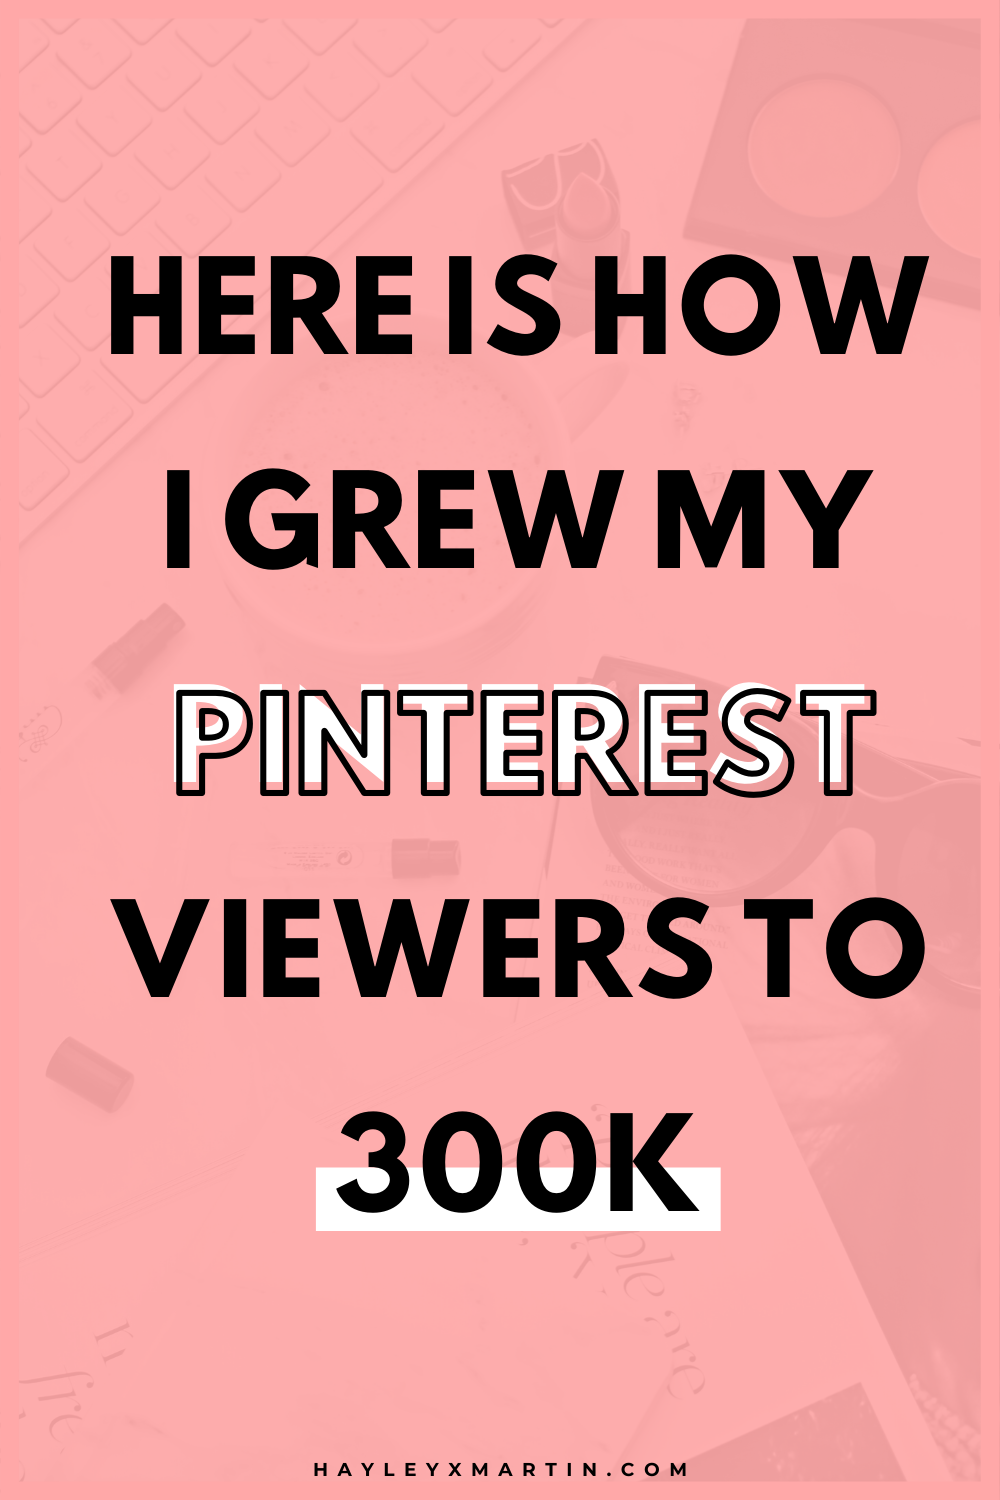 HERE IS HOW I GREW MY PINTEREST VIEWERS TO 300K+ | HAYLEYXMARTIN